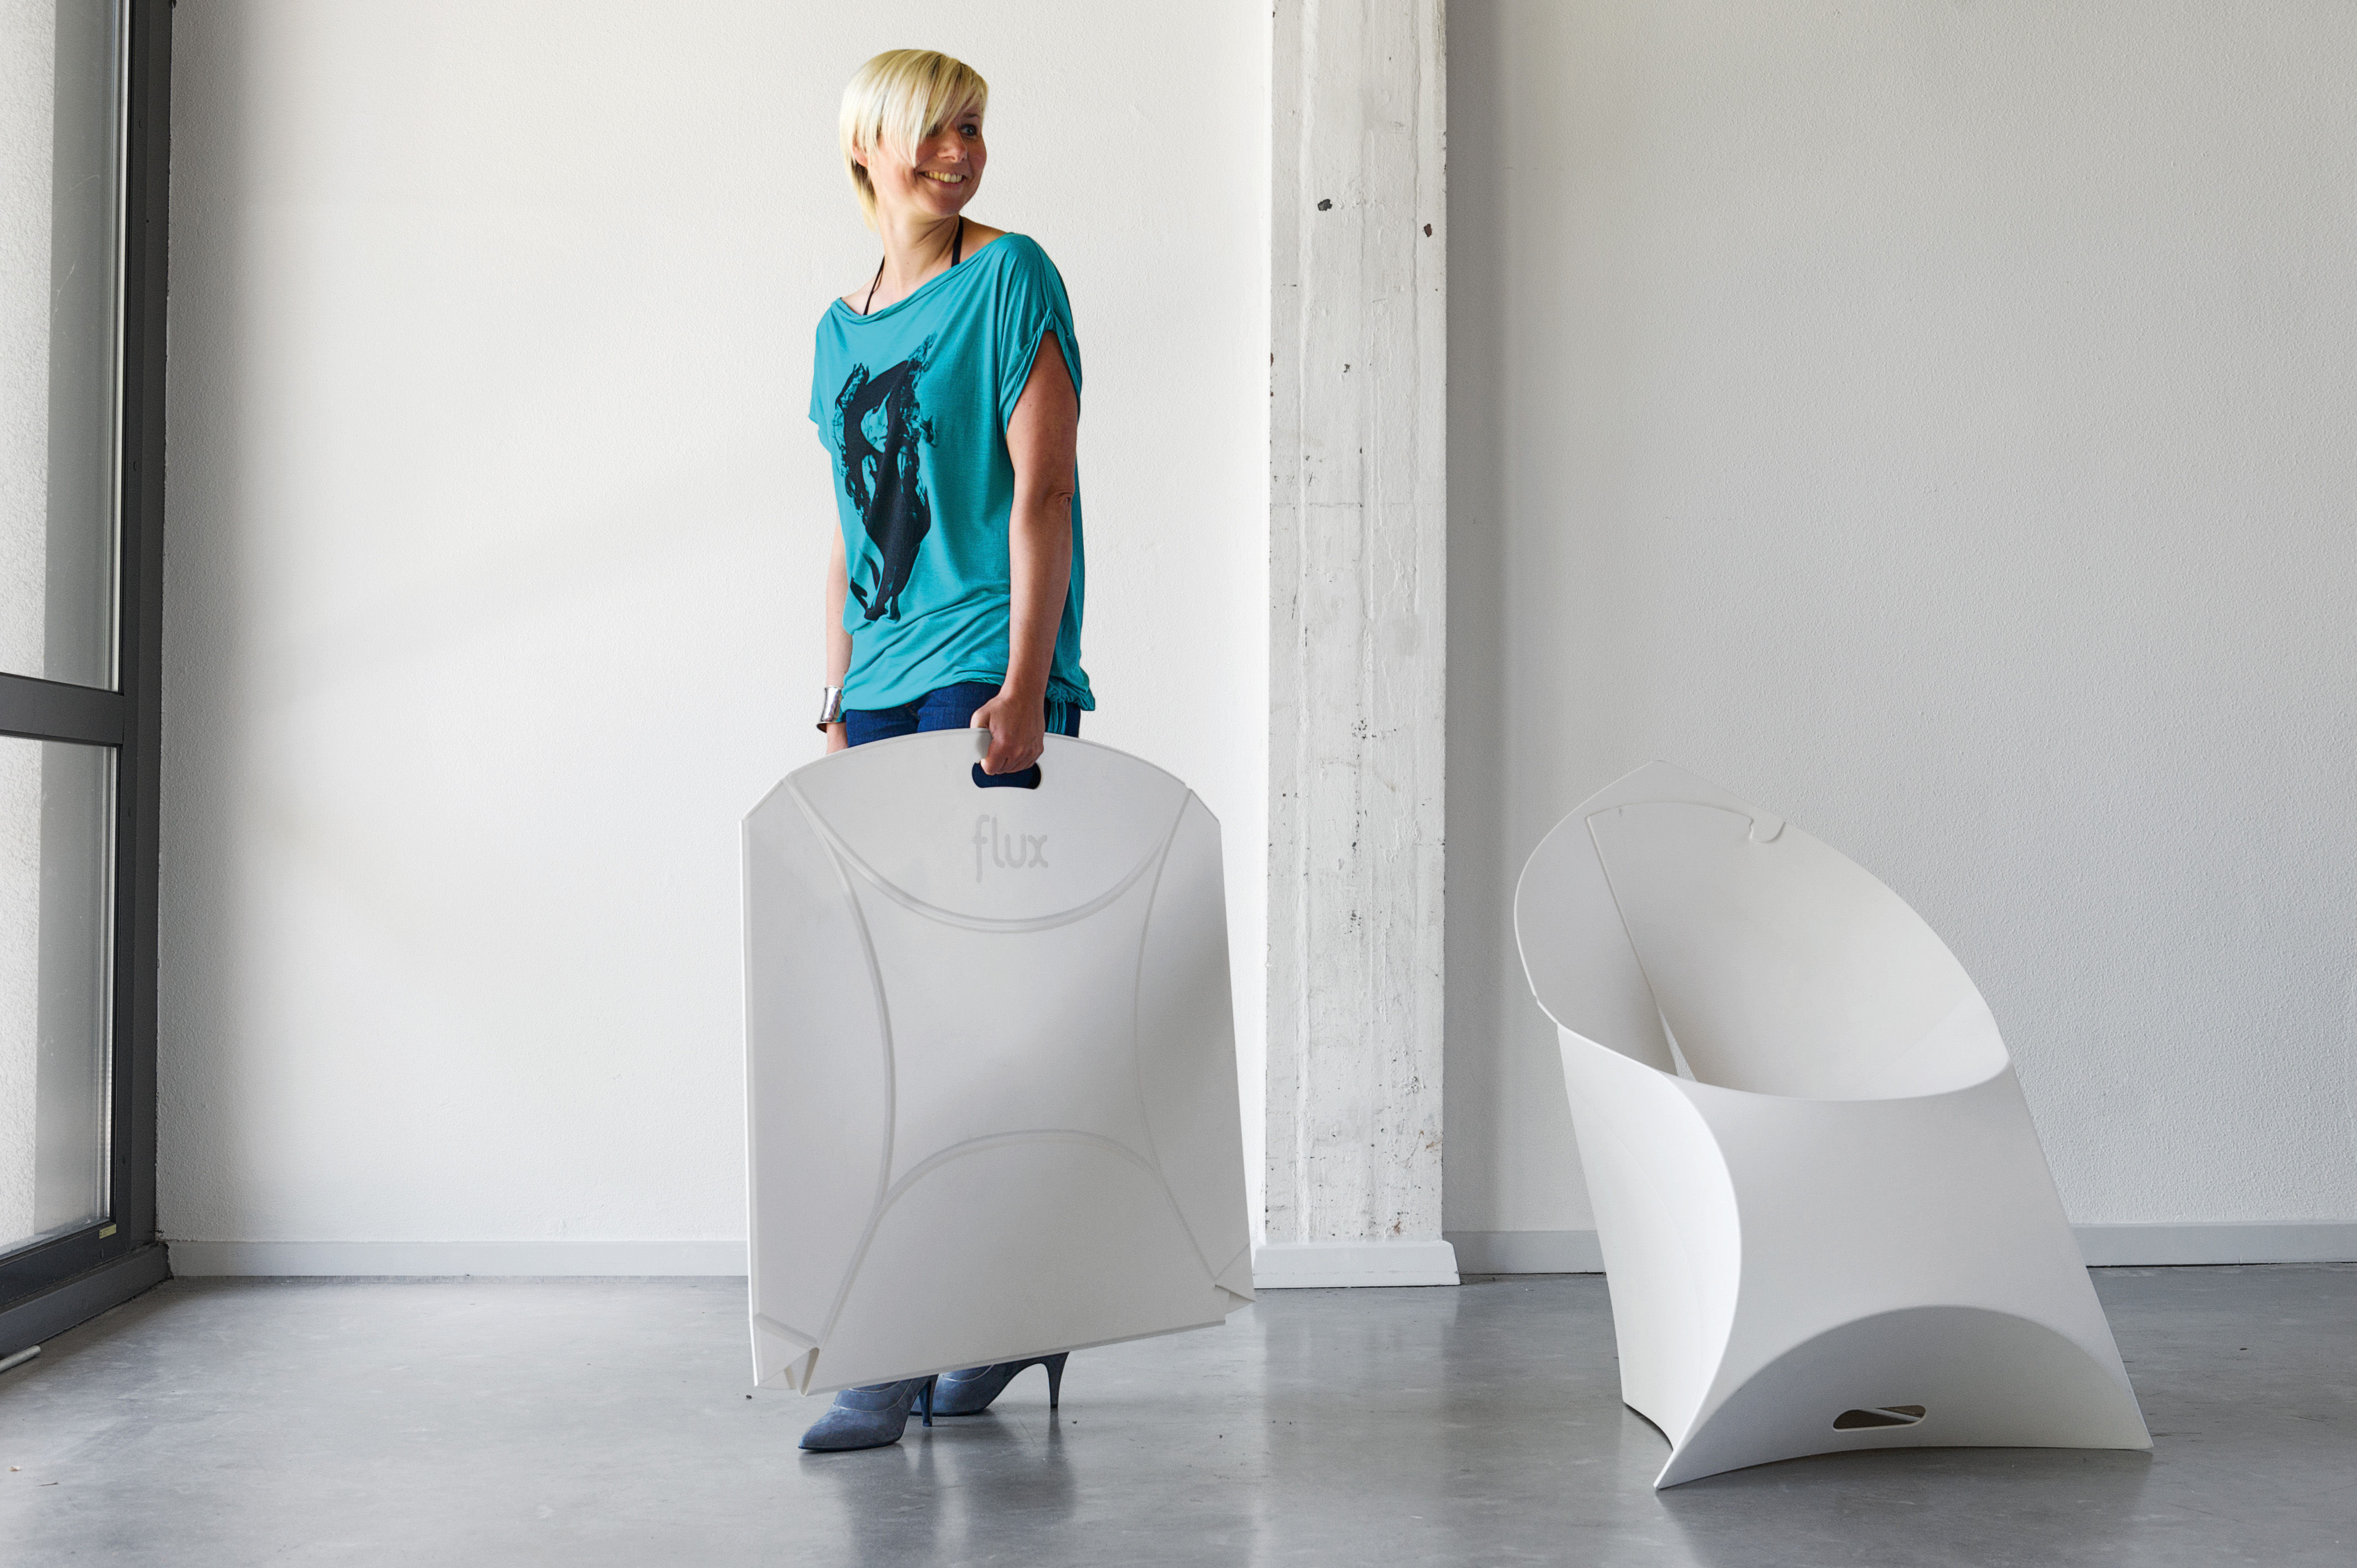 Flux Chair Folding Armchair   Polypropylene White By Flux | Made In Design  UK